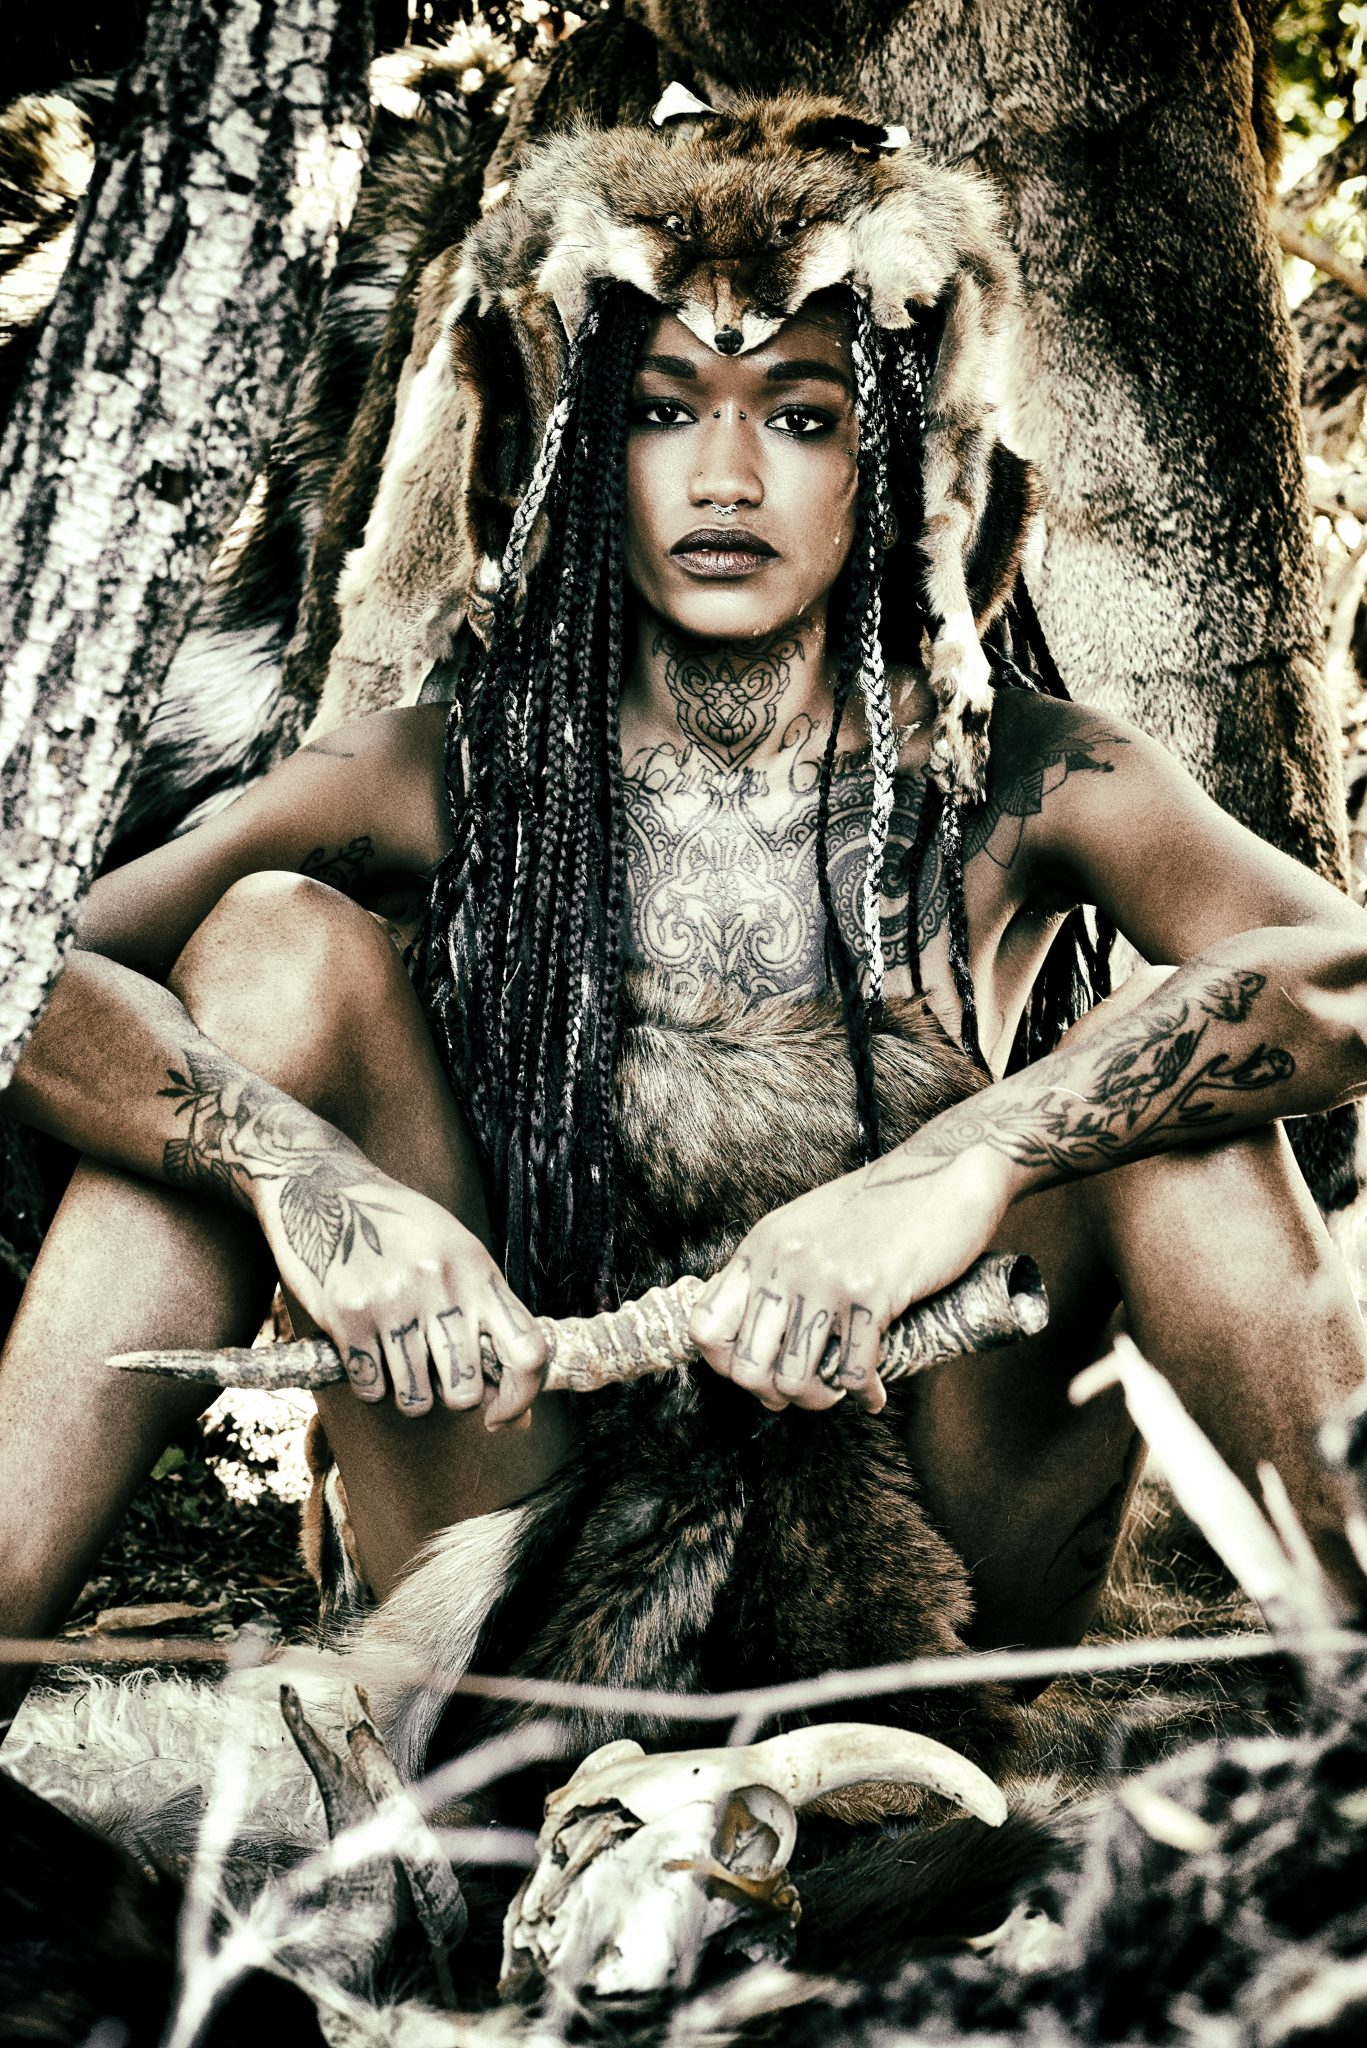 Horde's fashion story primitive fashion roots nature indian native american le dernier etage magazine editorial patrice berchery